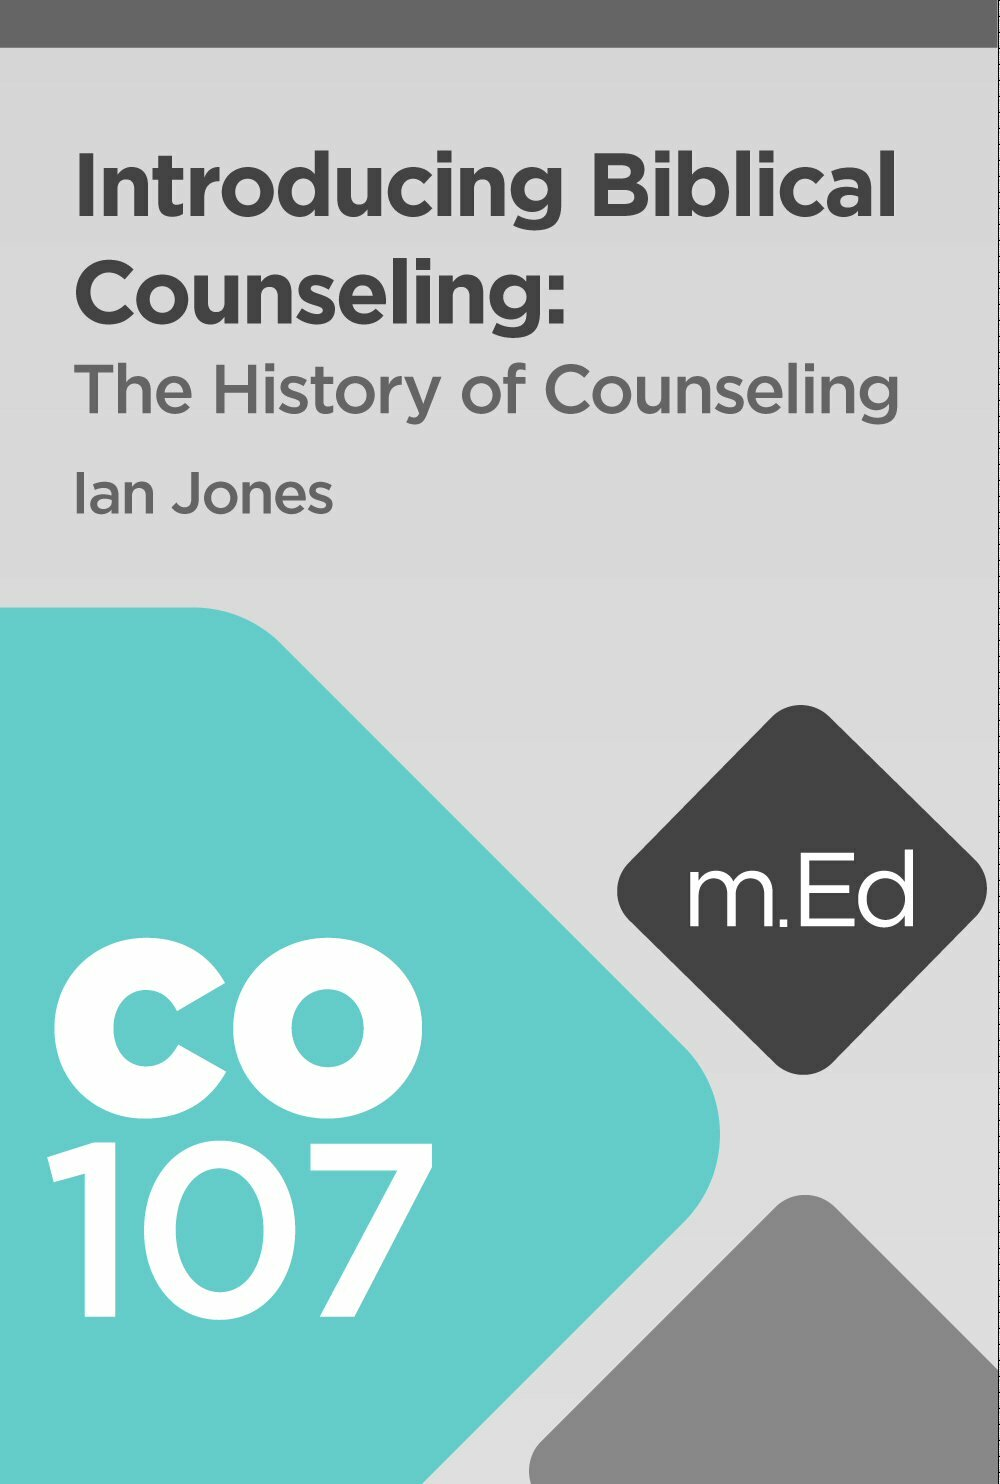 Mobile Ed: CO107 Introducing Biblical Counseling: The History of Counseling (5 hour course)